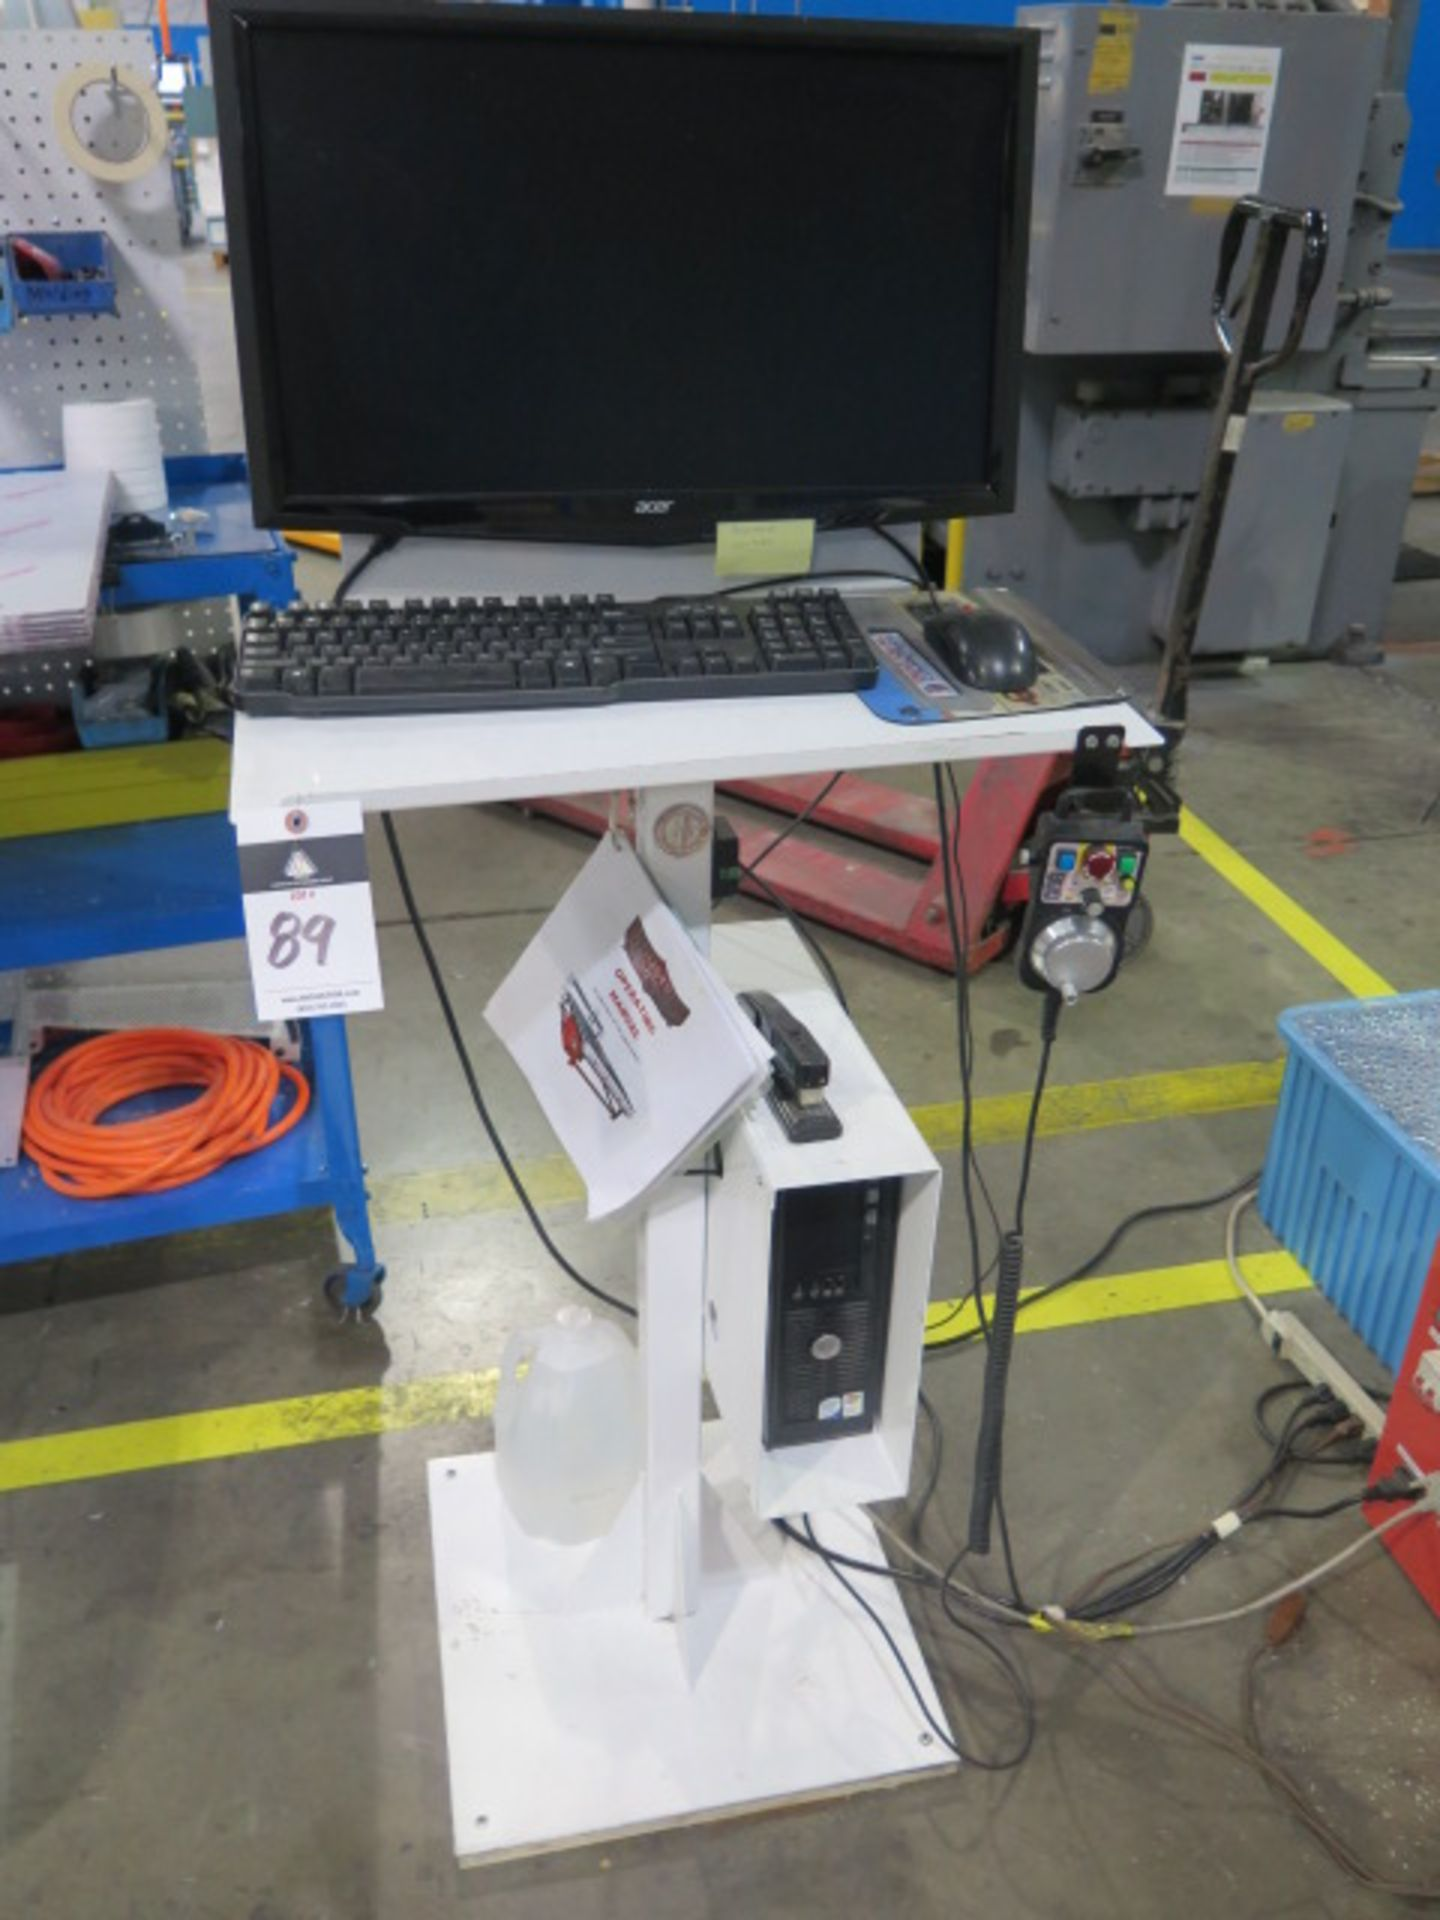 """Industrial CNC """"Mach 3"""" 48"""" x 48"""" Pro Series CNC Router w/ """"Mach 3"""" System Software, 48"""" x 48"""" x 12"""" - Image 9 of 12"""